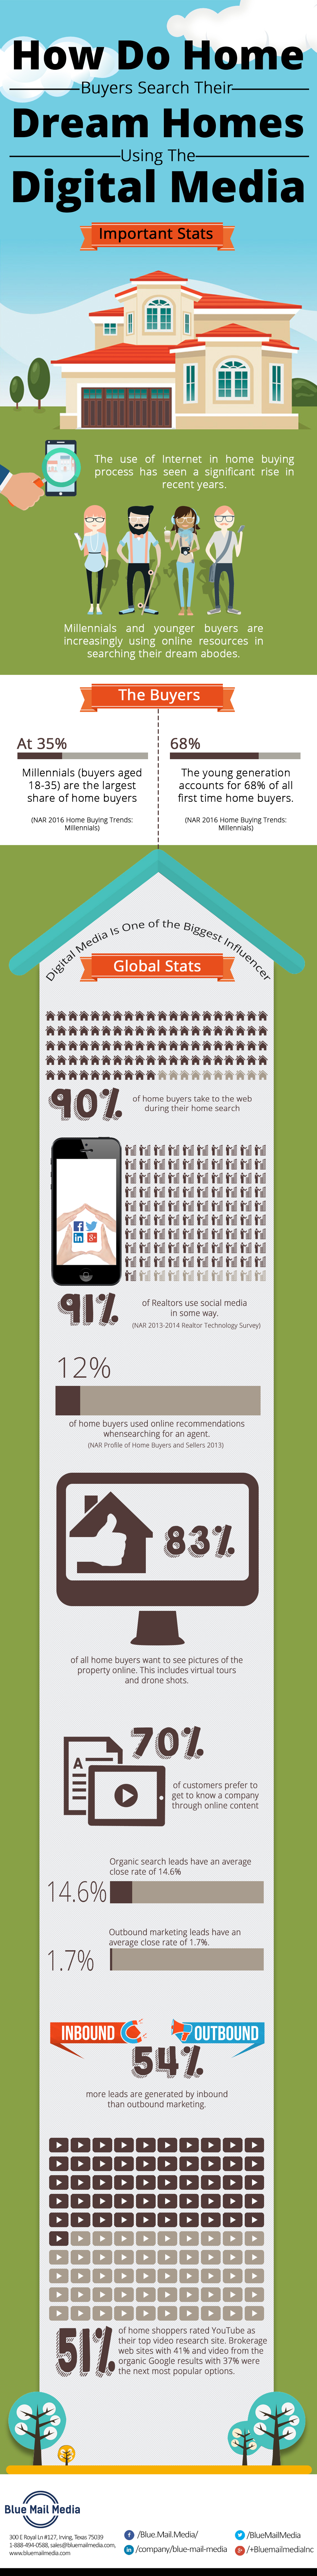 Looking To Buy/Sell A Home? Digital Media To The Rescue! - Infographic